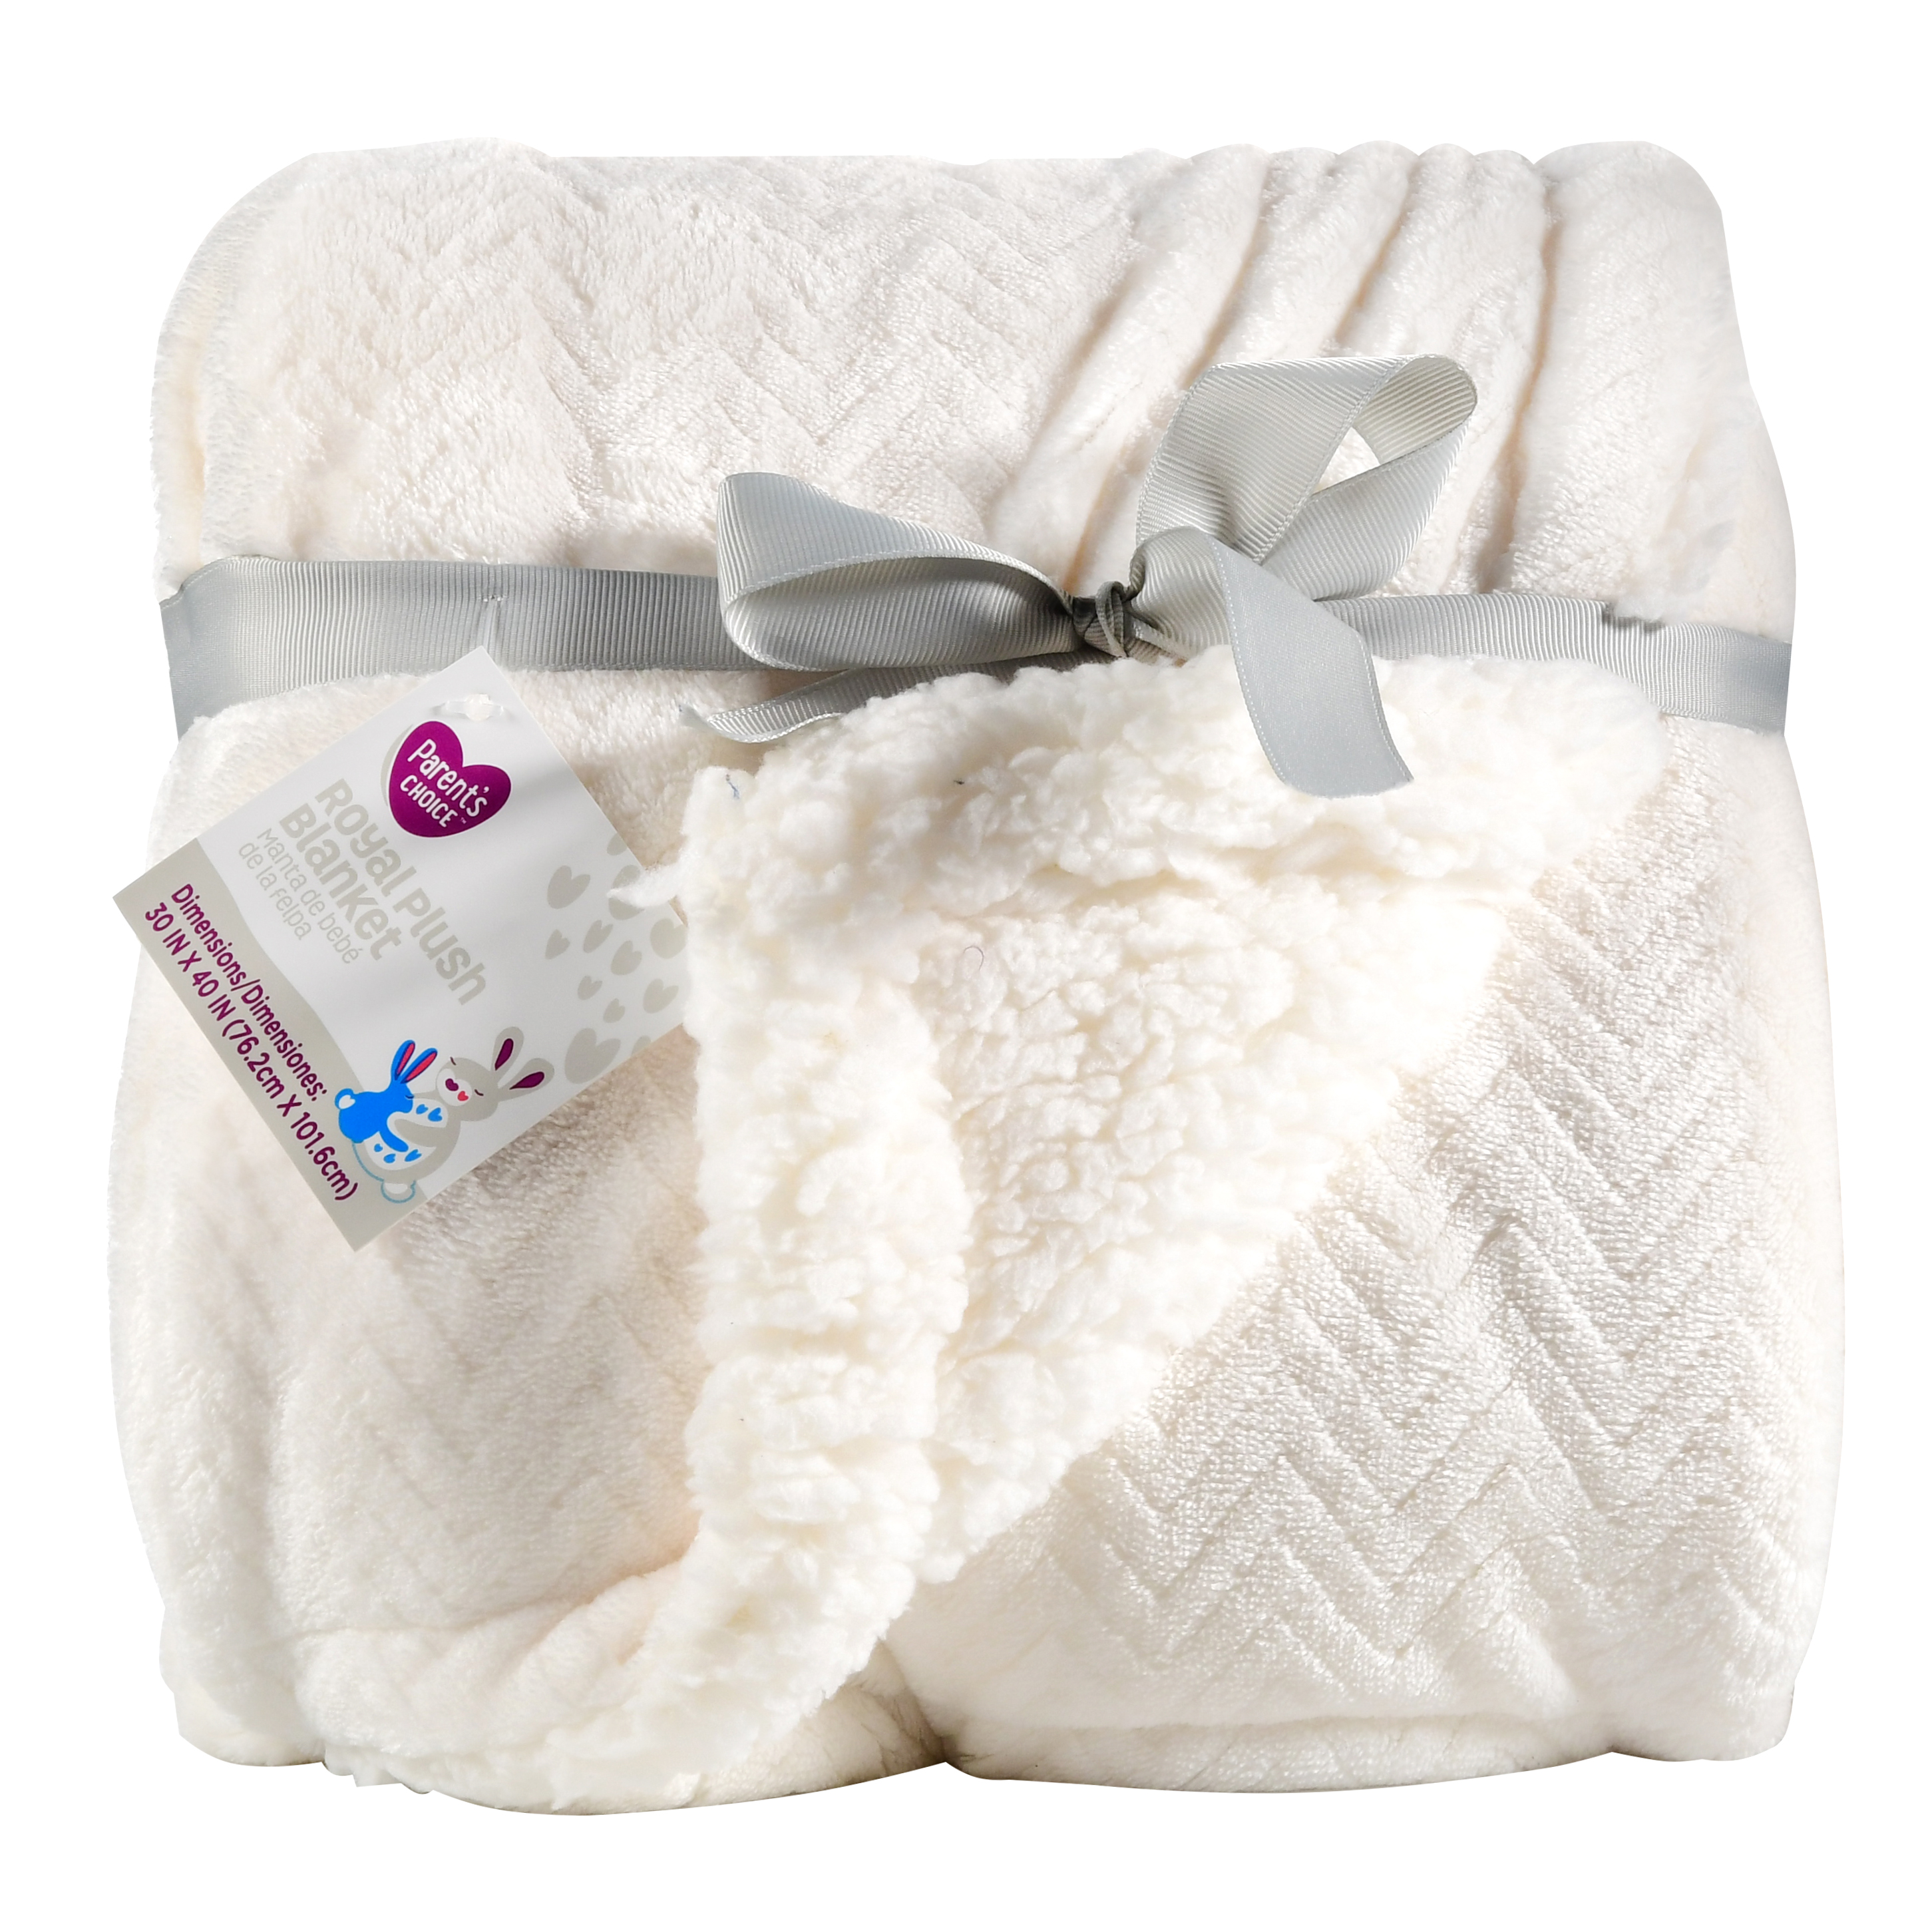 Parent's Choice Royal Plush Blanket, White, 1 Pack